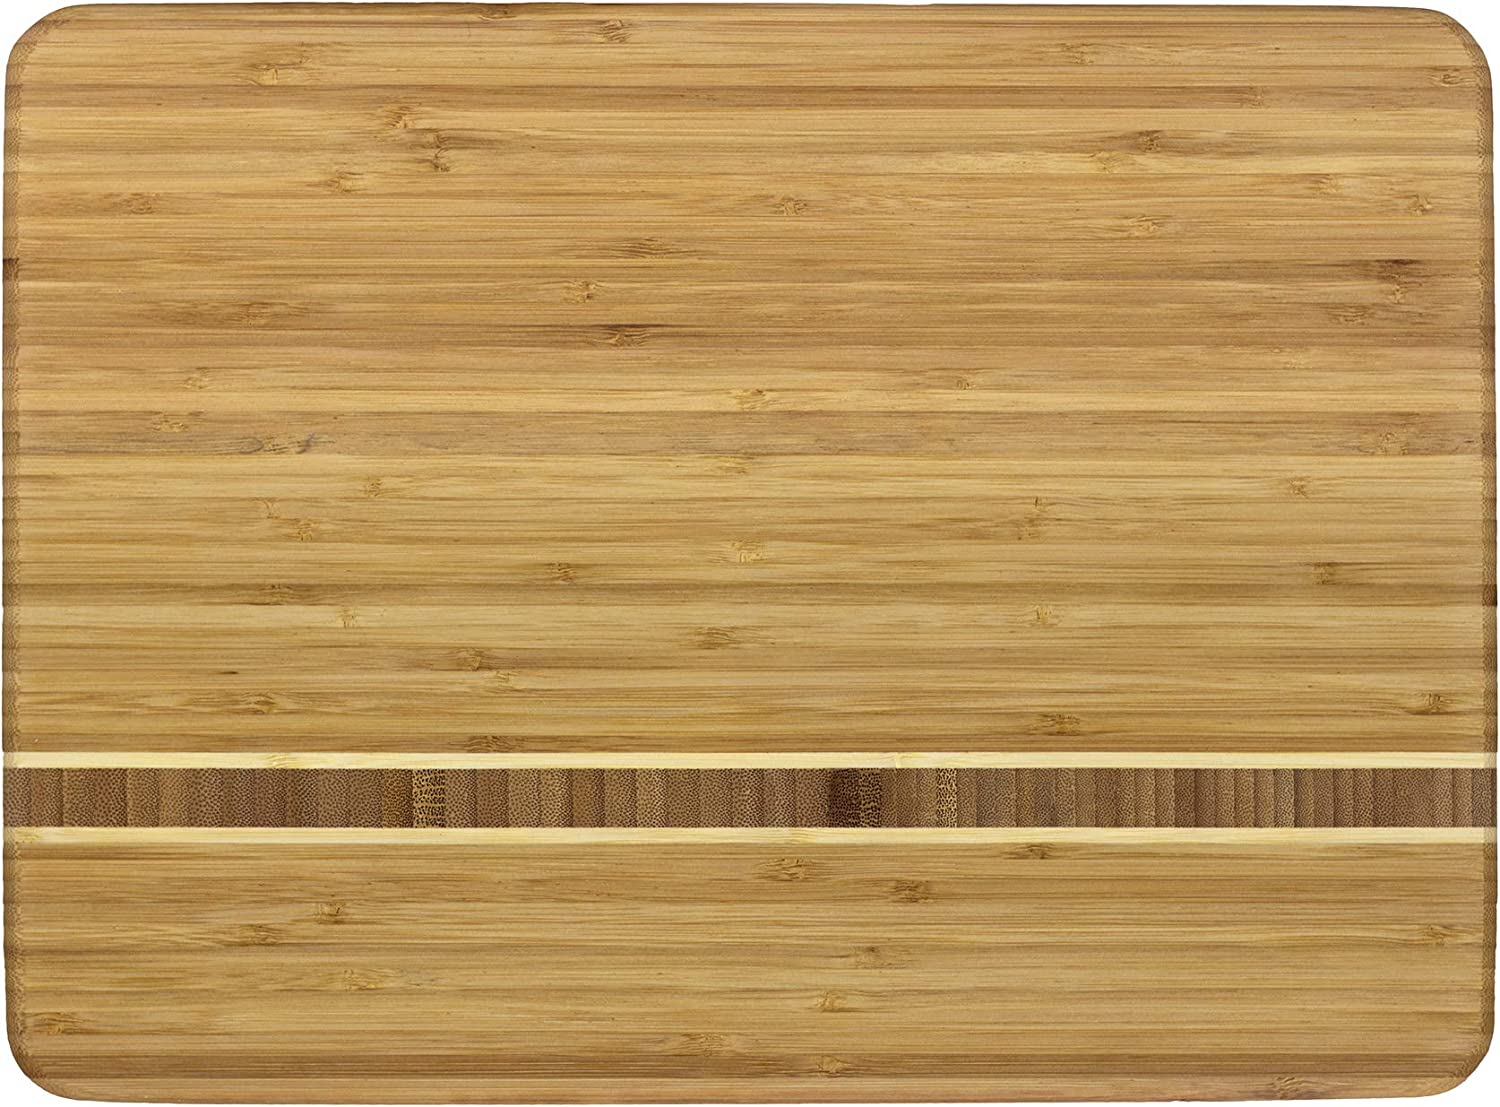 Totally Bamboo Martinique Bamboo Serving and Cutting Board, 15